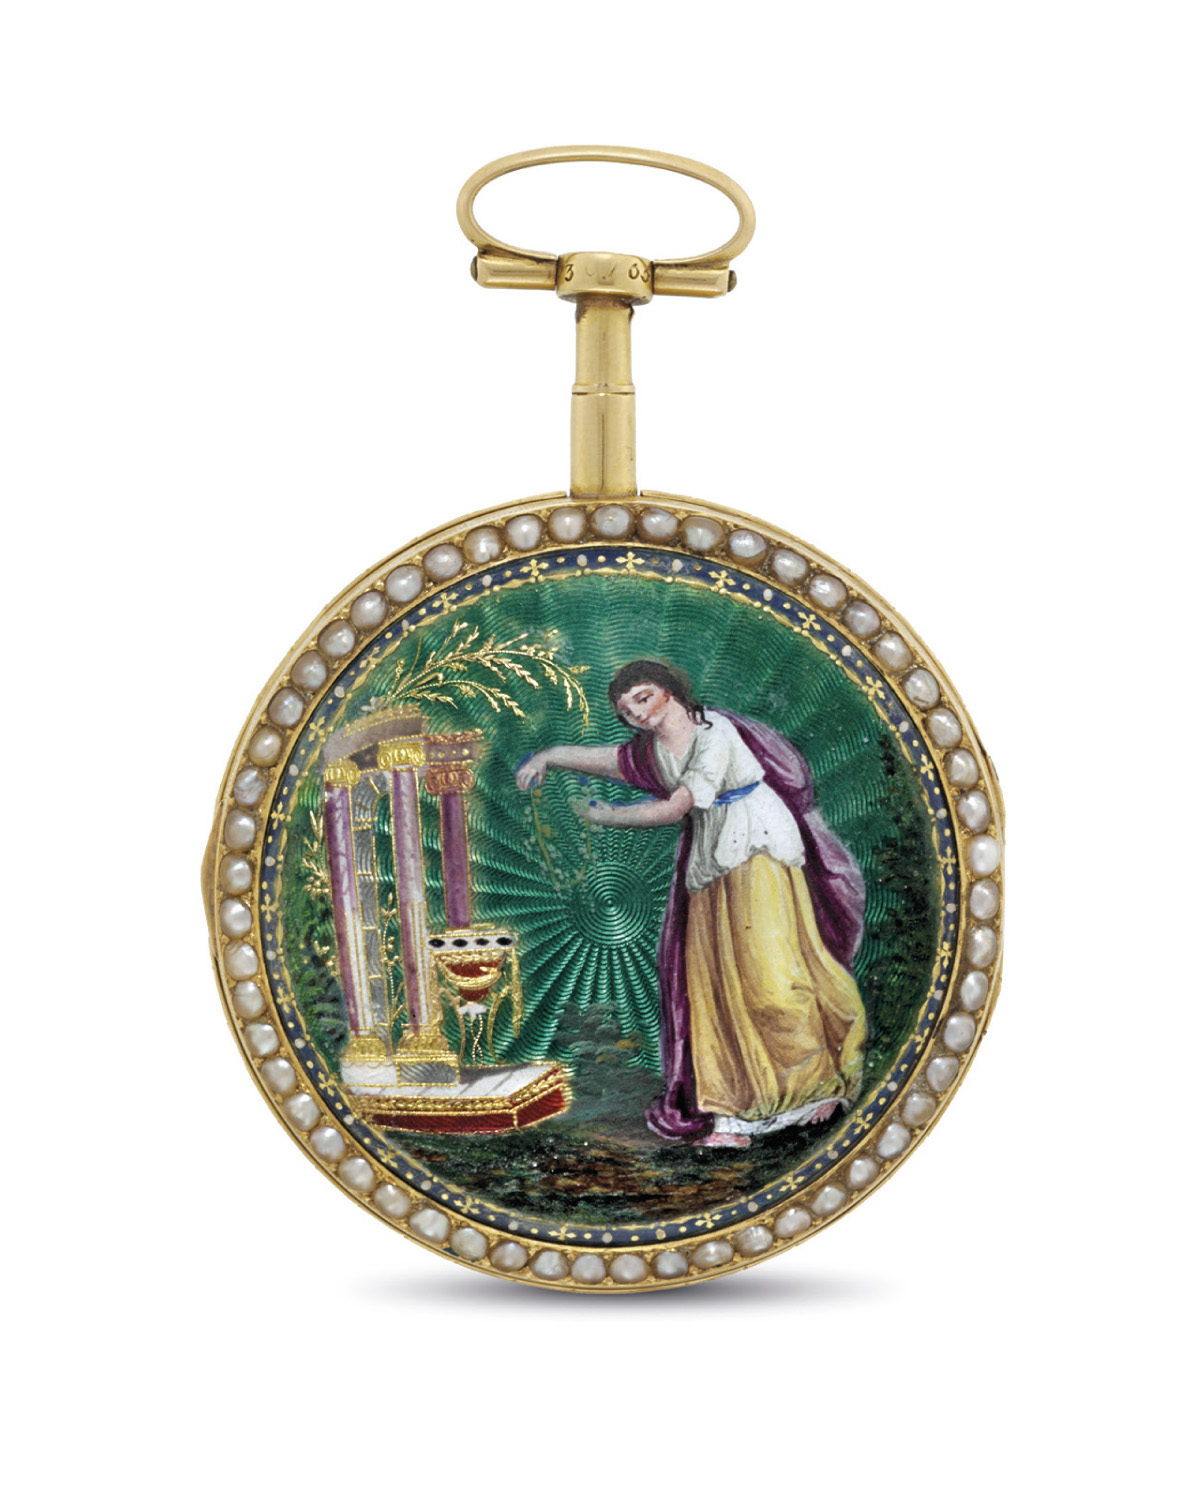 MORICAND. A GOLD, ENAMEL AND P